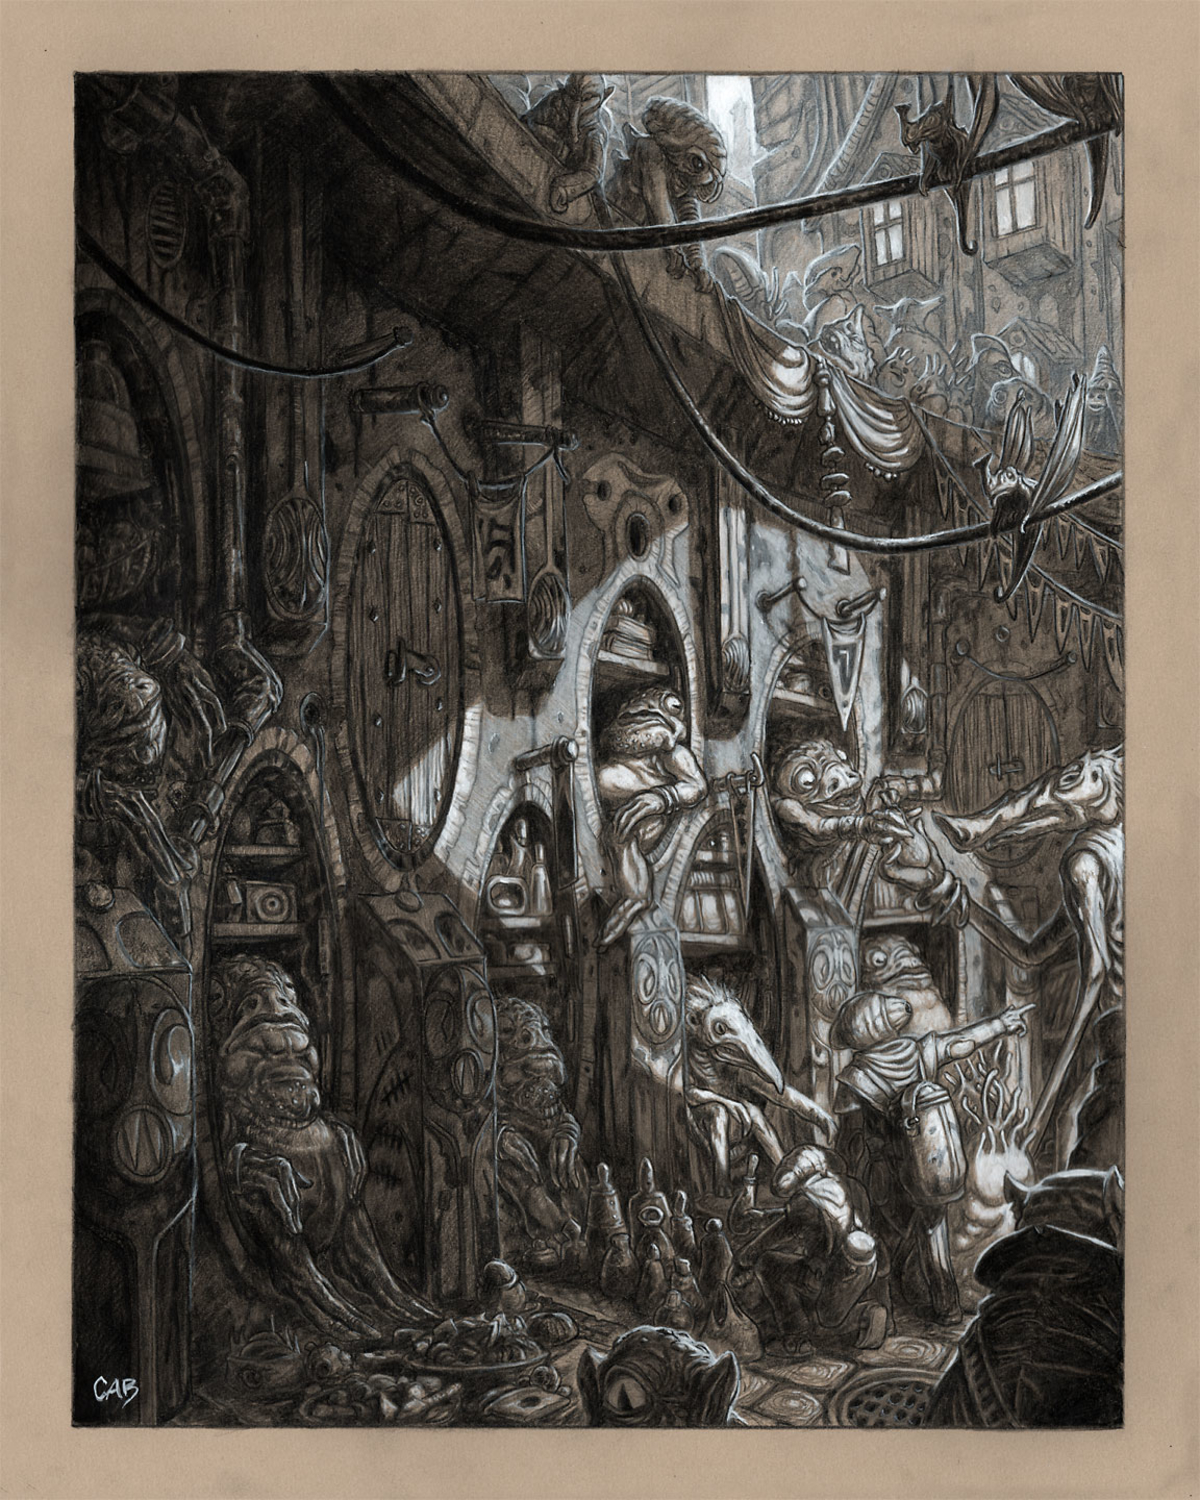 Hollow Alley Artwork by Christopher Burdett